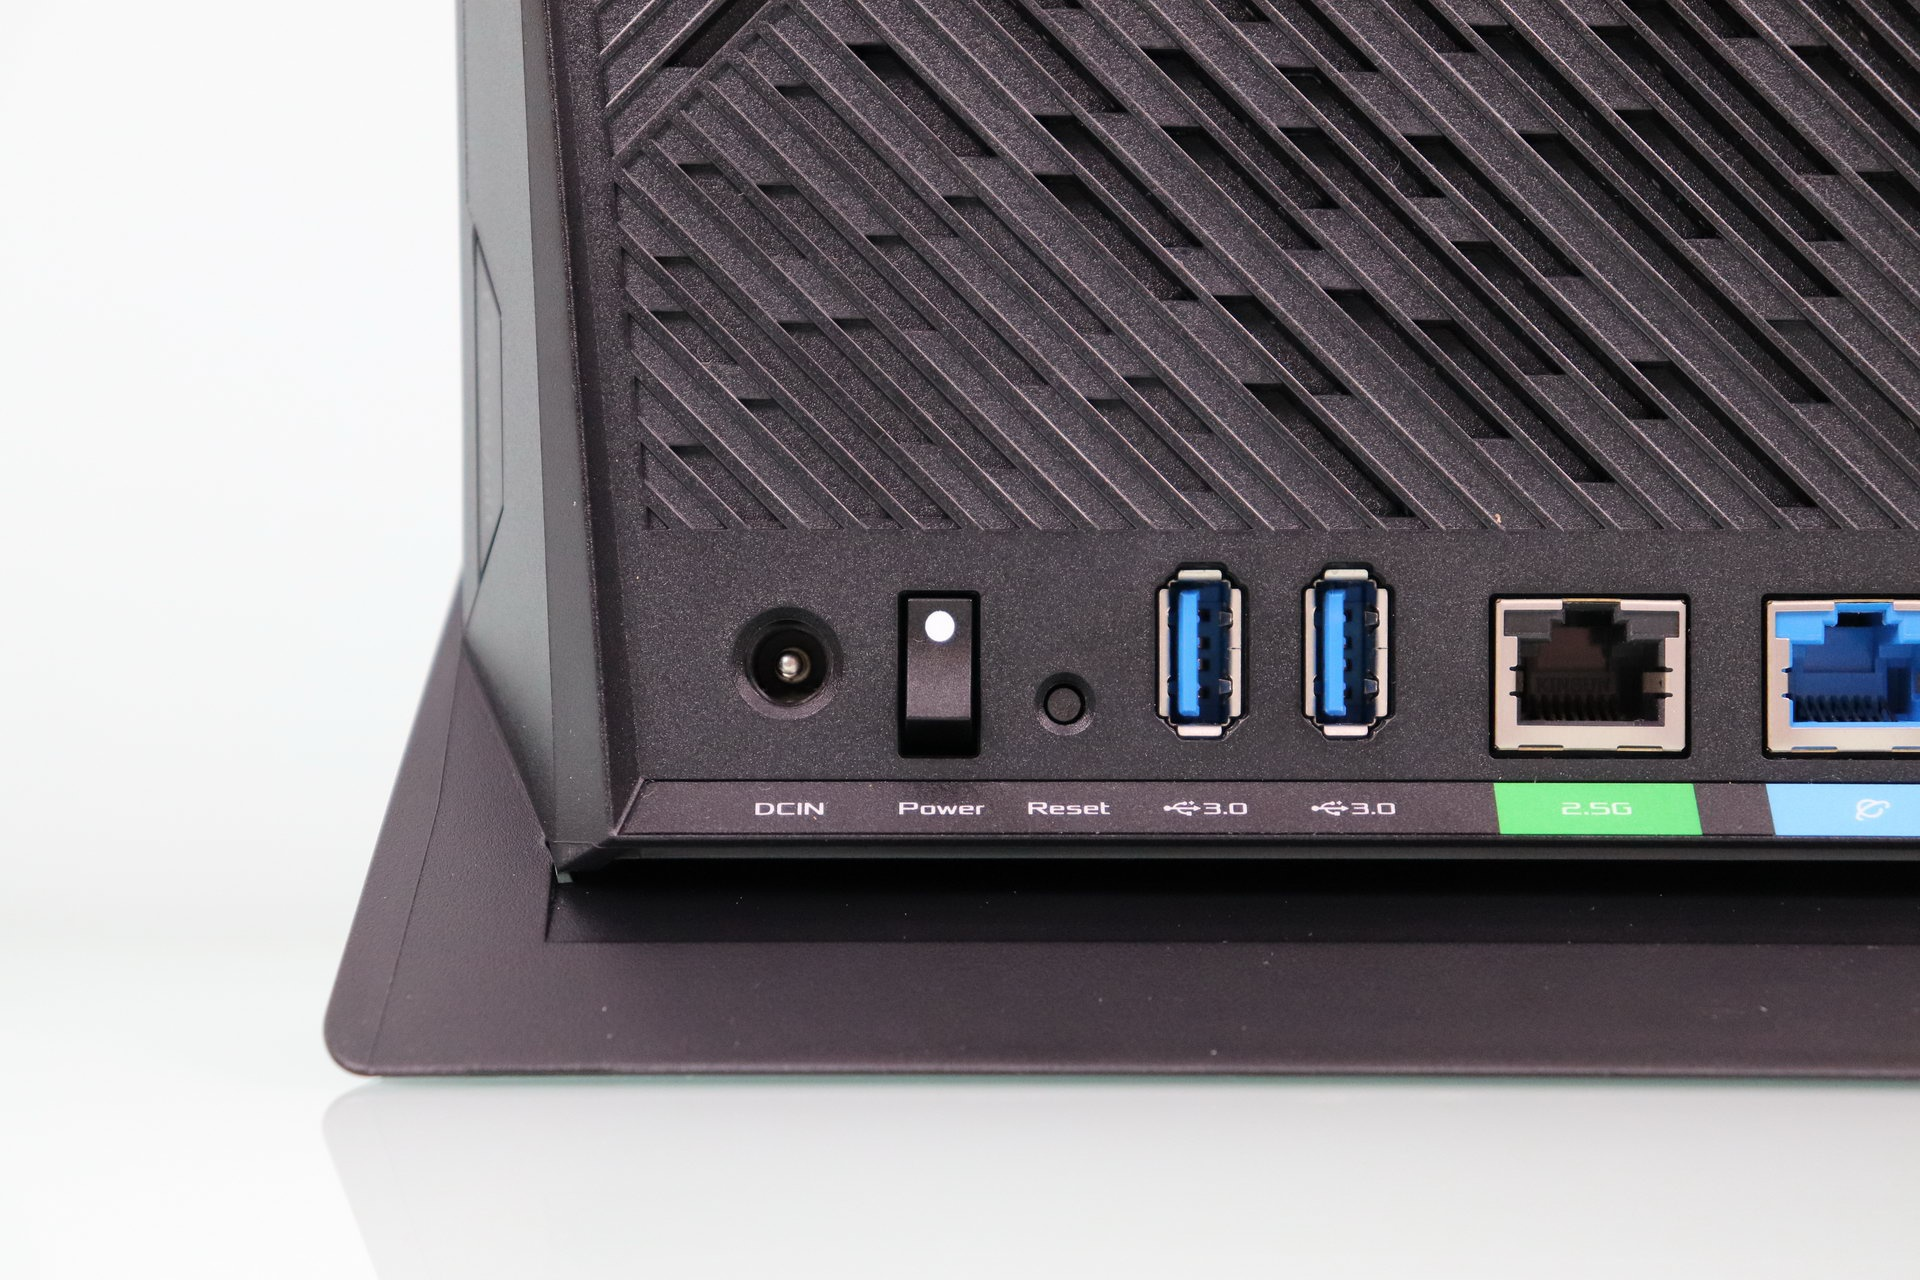 ASUS RT-AX86U router power and USB 3.0